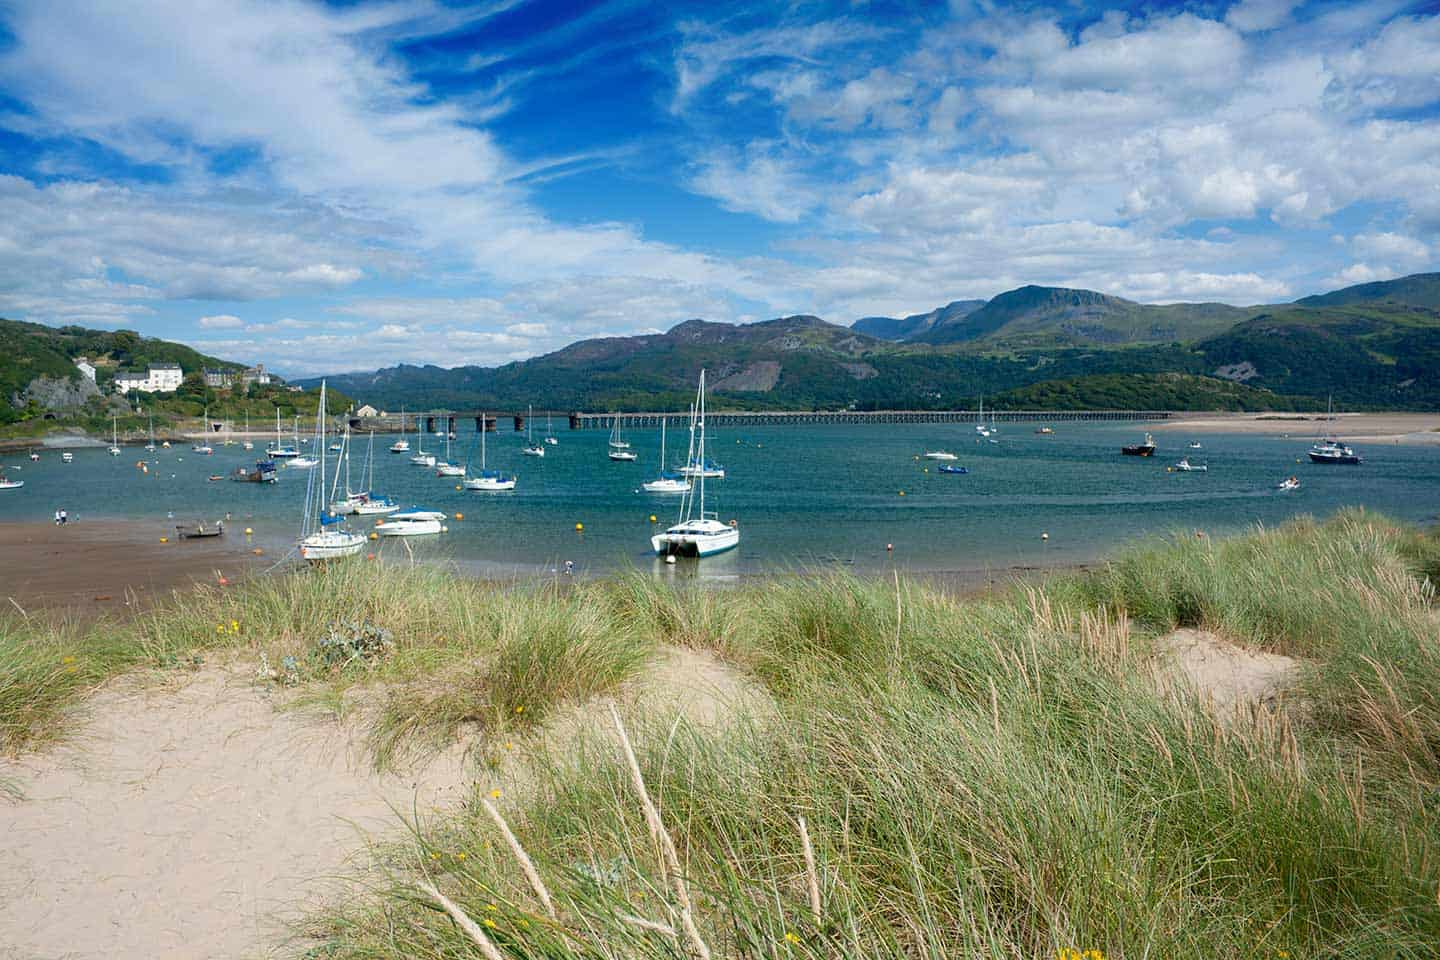 Image of Barmouth beach and the Mawddach river